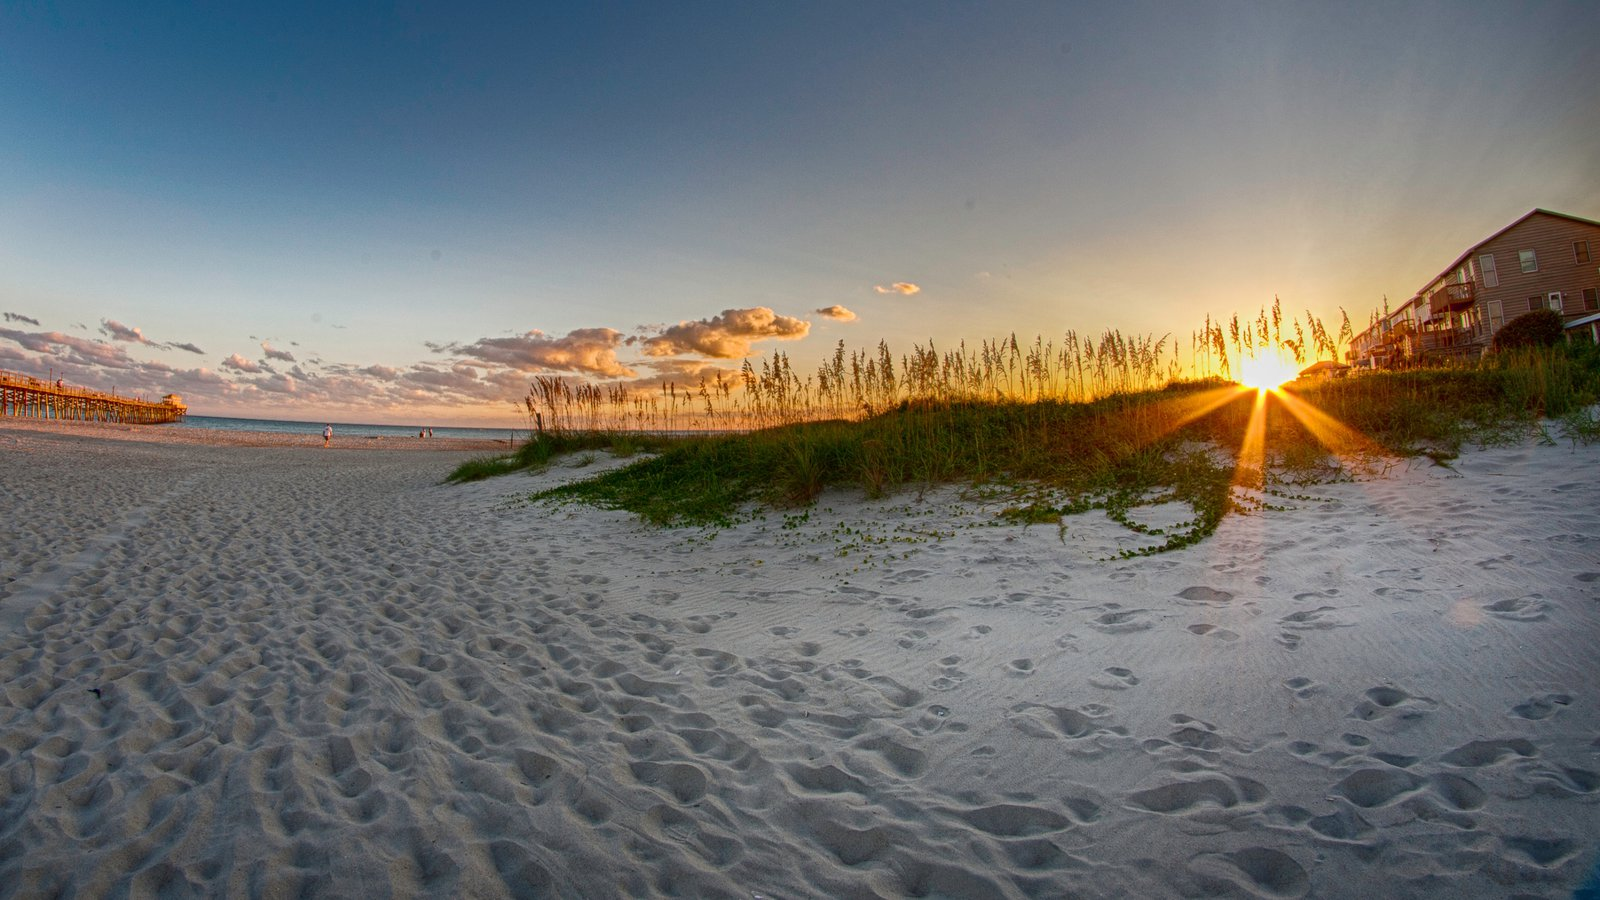 Morehead City Showing A Sunset And Beach